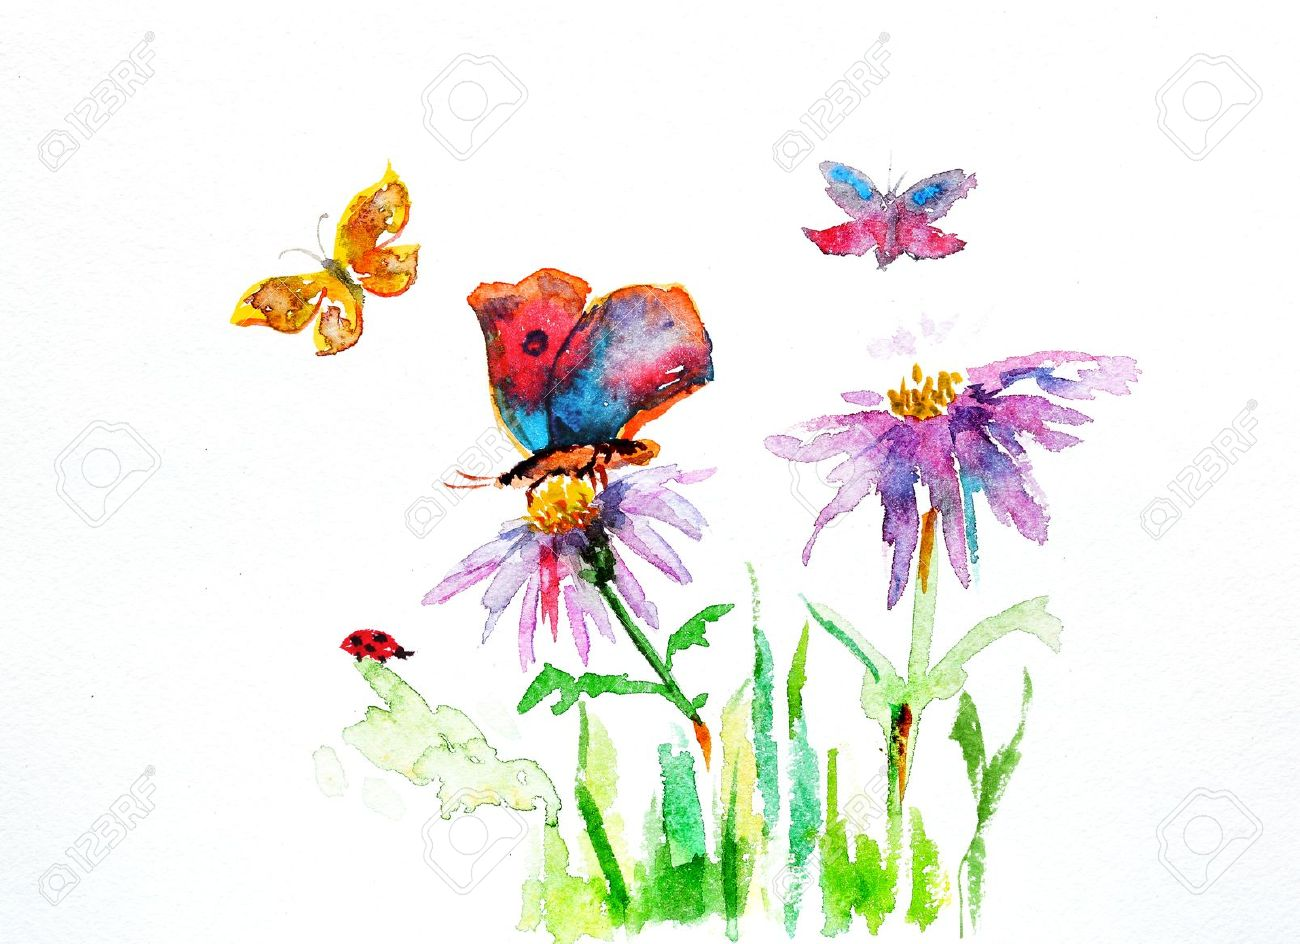 1300x944 Watercolor Drawing Of A Flower With A Butterfly Stock Photo